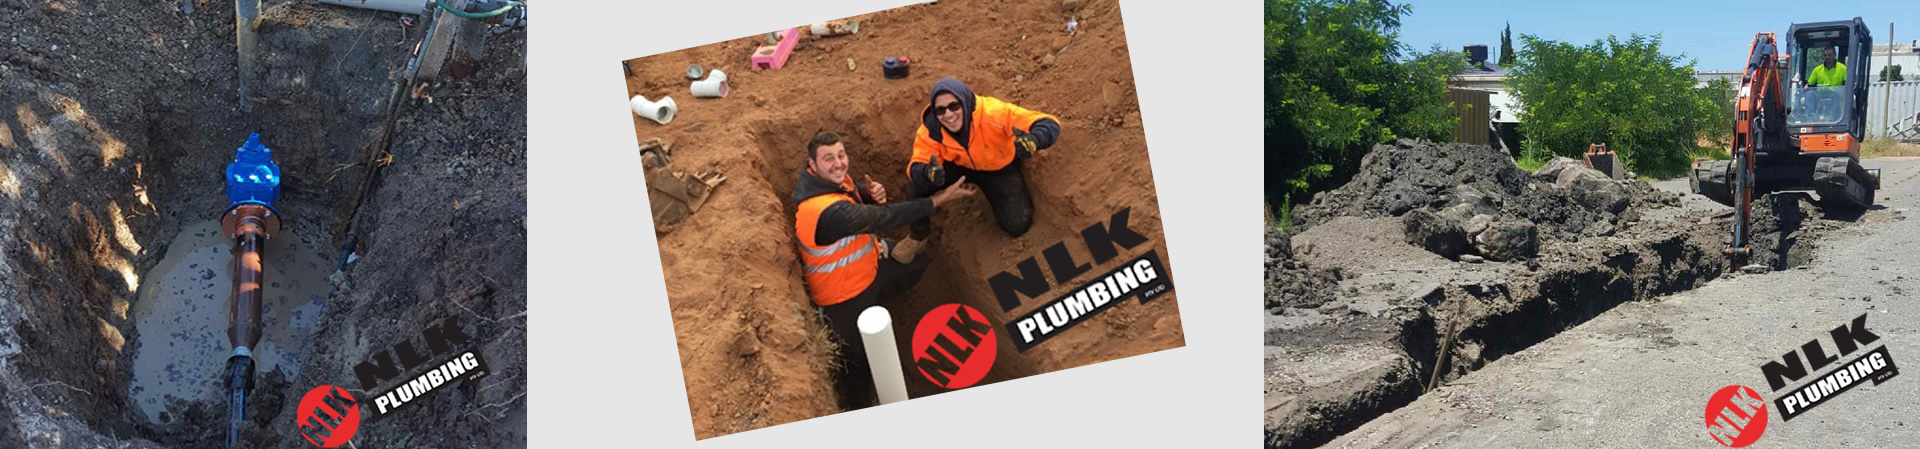 5 Plumbing Techniques for Weekend Break Plumbers Melbourne